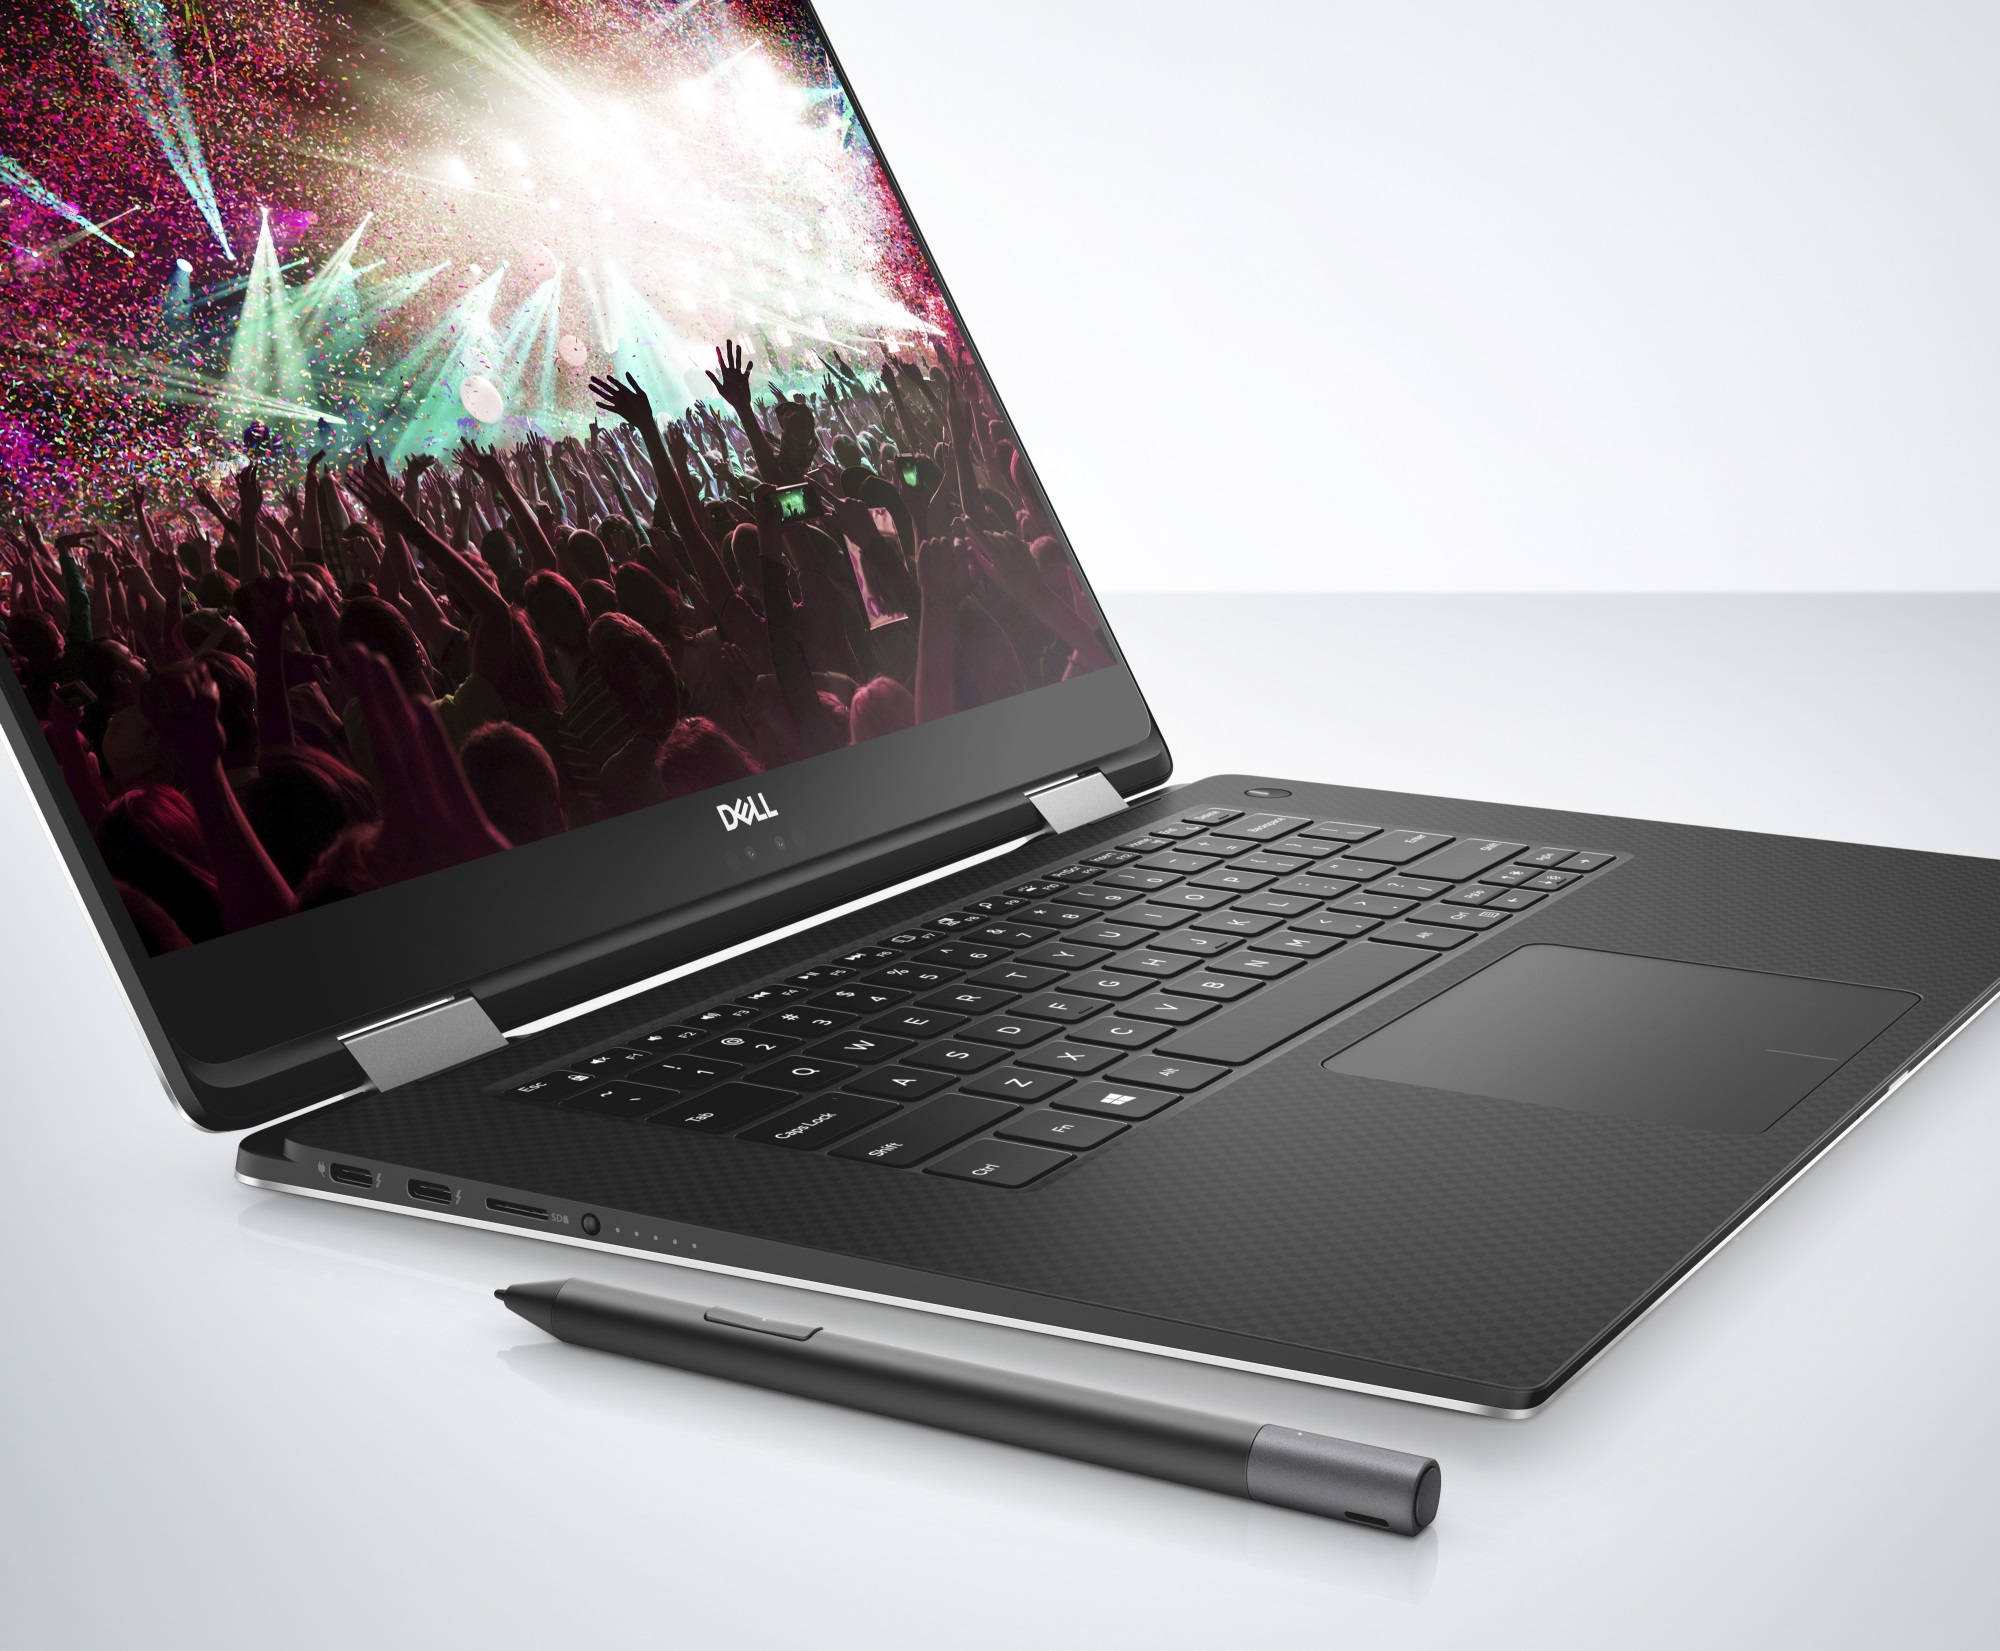 Dell at CES 2018: Updates XPS 15 2-in-1 - Intel Kaby Lake-G